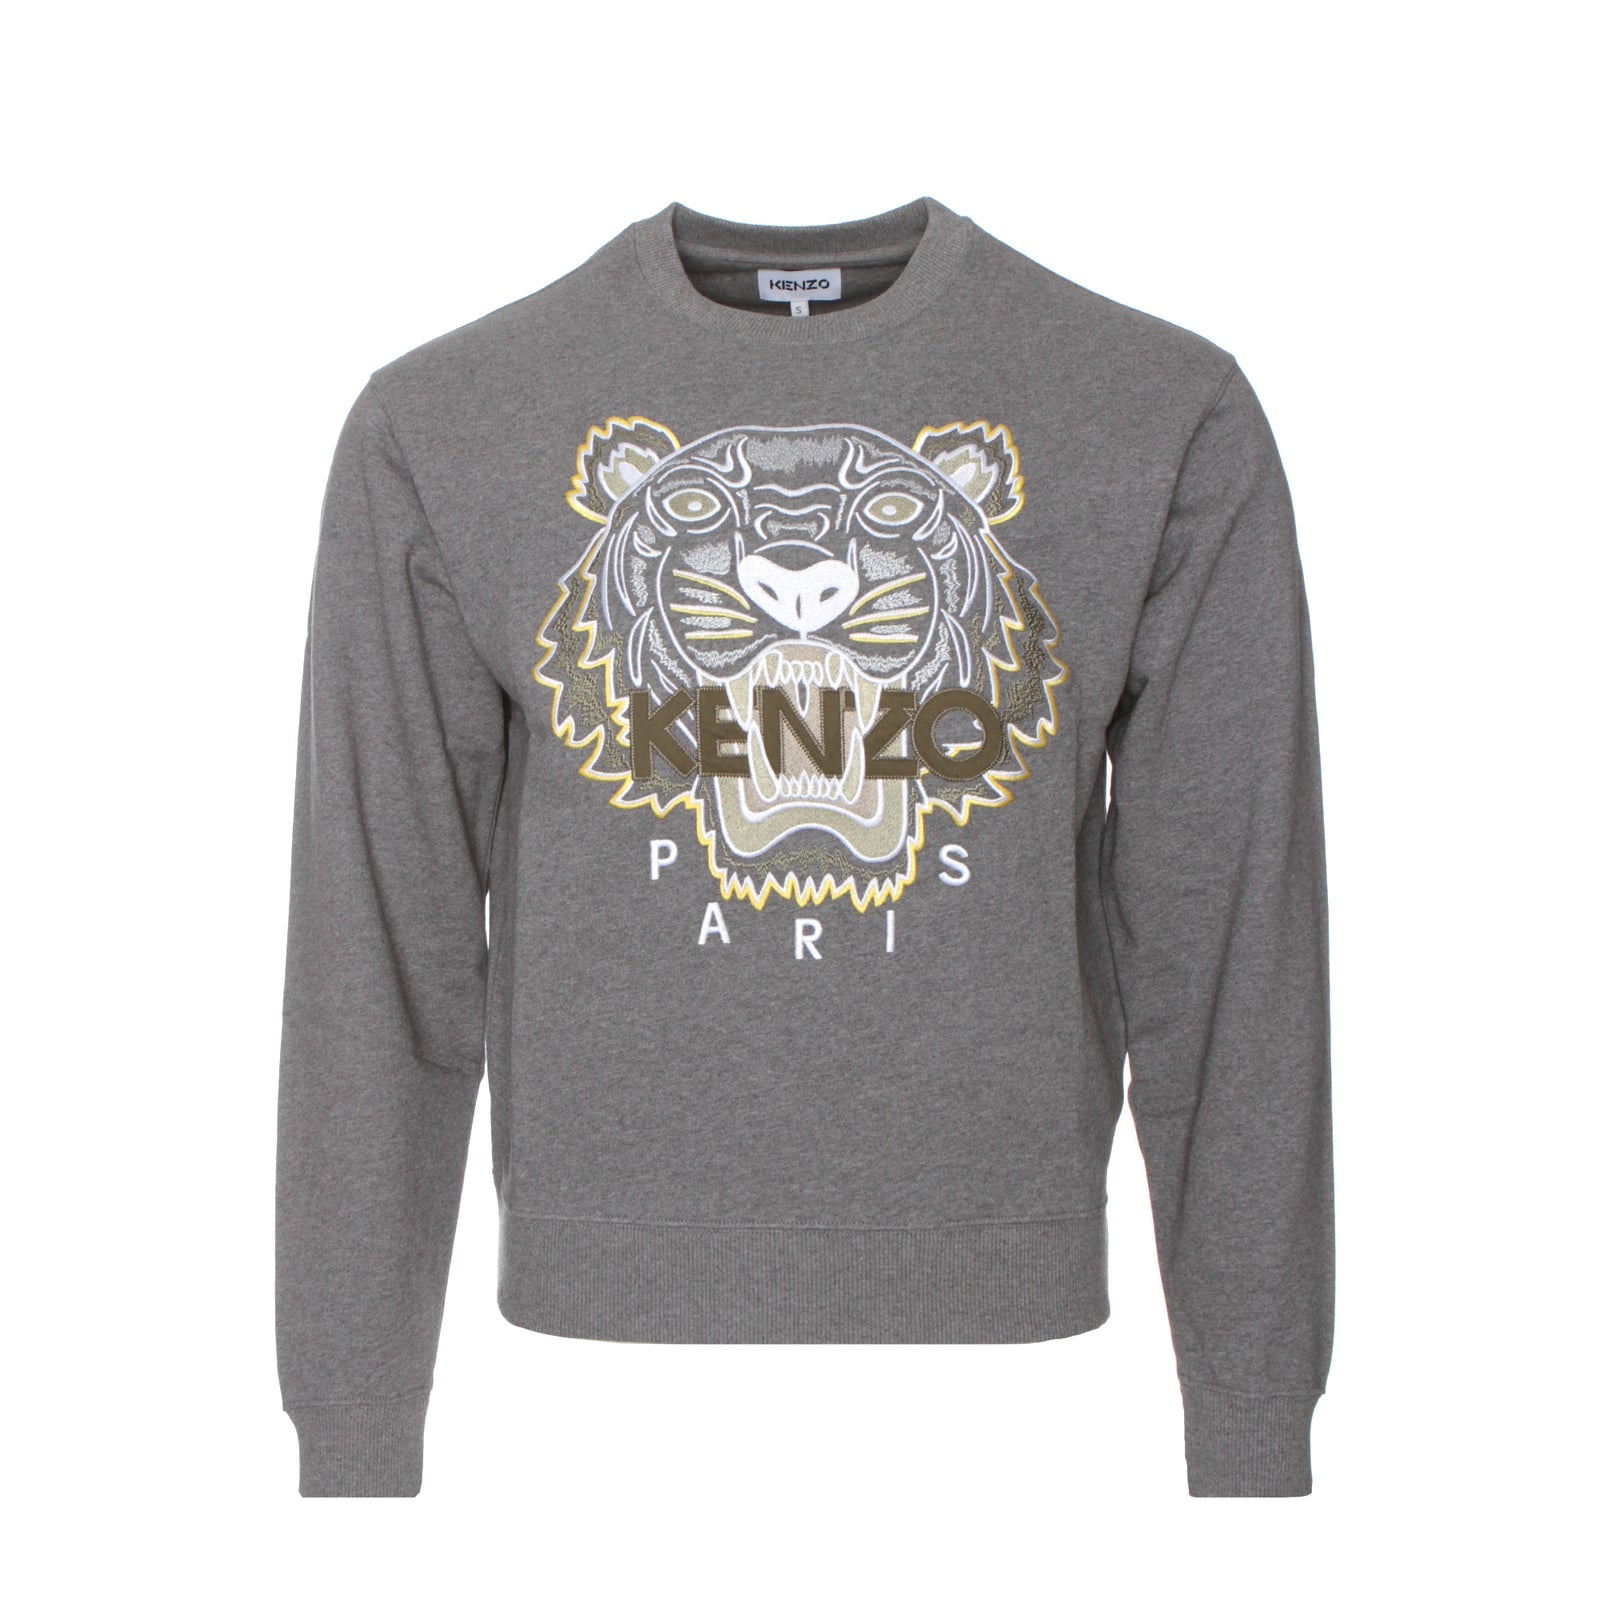 Kenzo Paris SS21 Tiger Classic Men's Pullover Sweatshirt Dove Grey